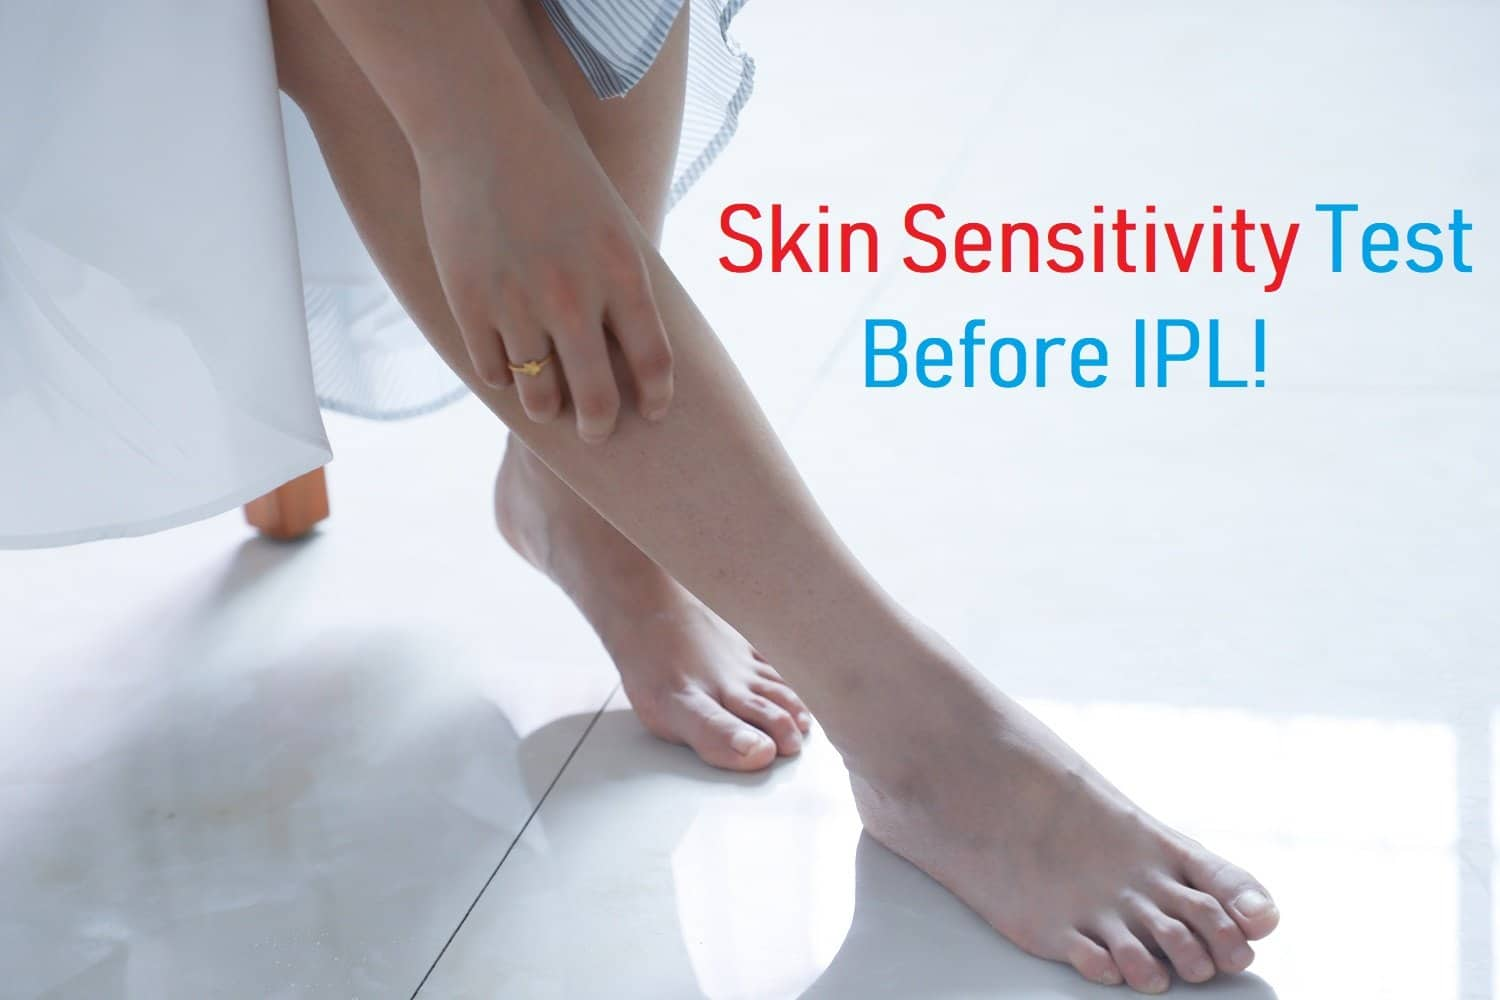 Skin Sensitivity Test